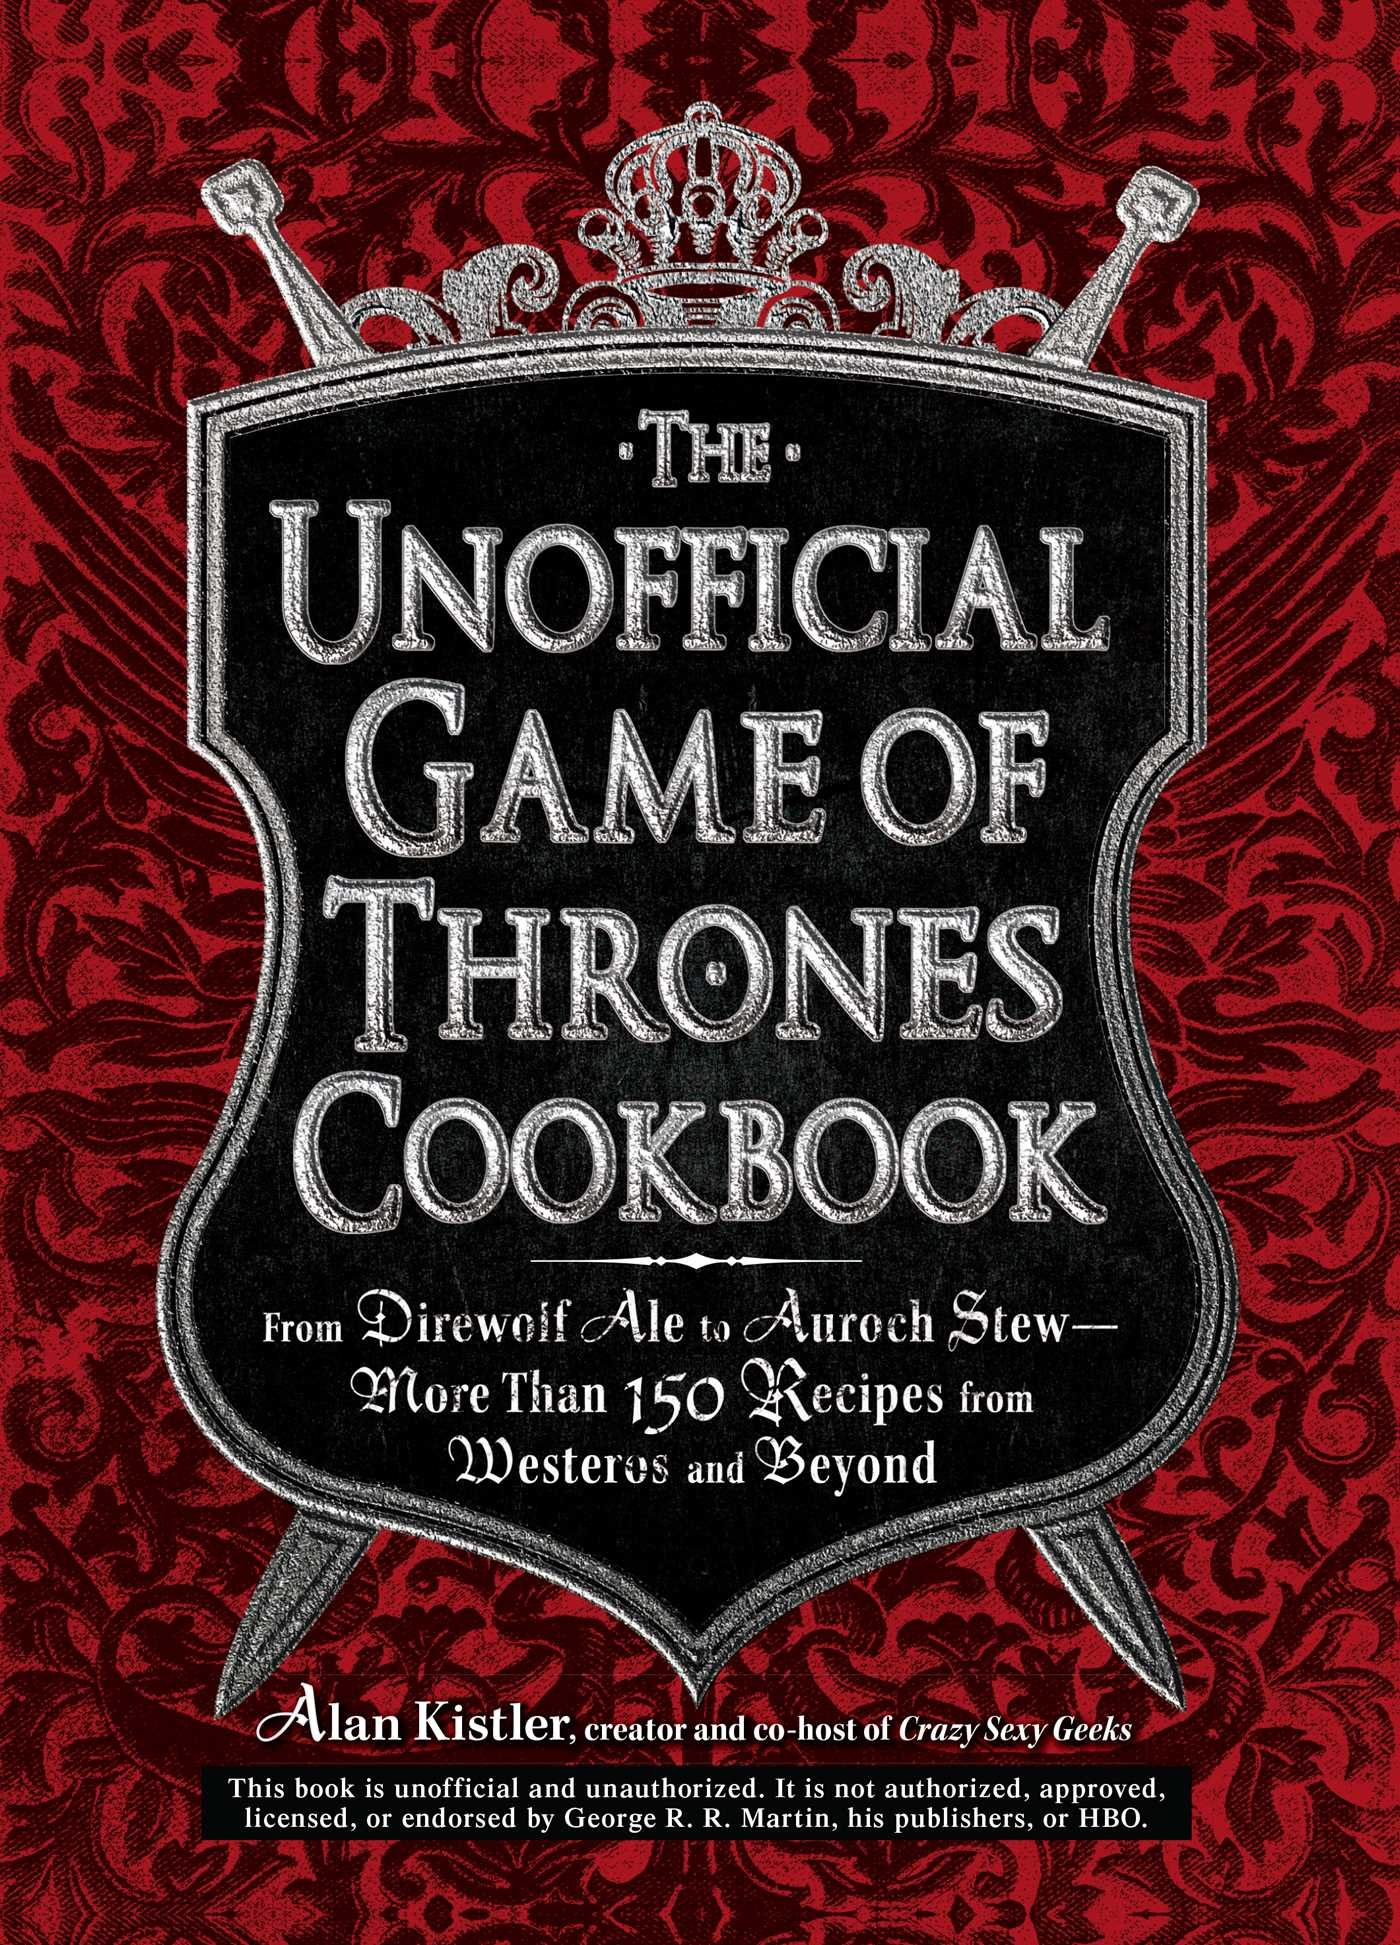 Unofficial Game Thrones Cookbook Direwolf product image